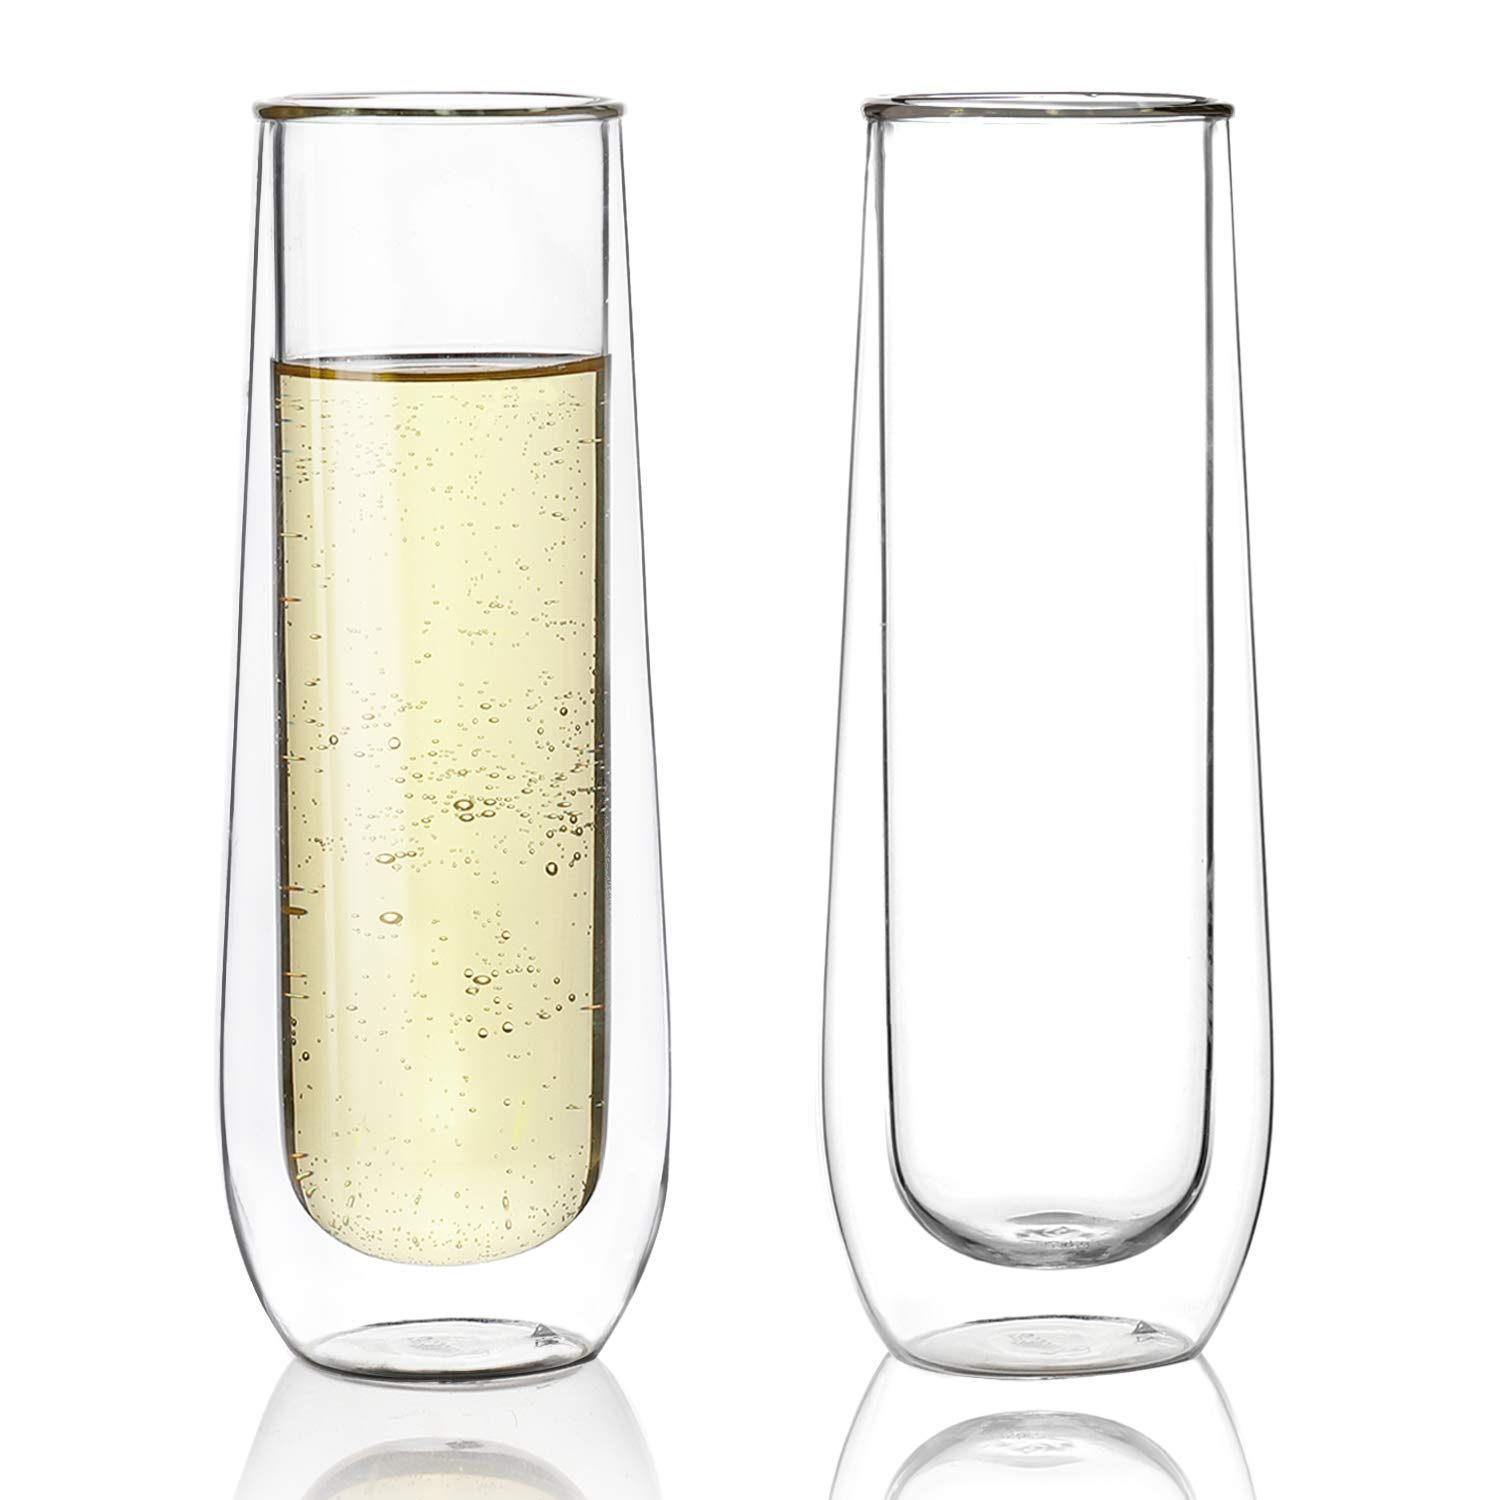 Sweese 4614 Stemless Champagne Flute Glasses Set of 2 — 6 oz Double Walled Stemless Glass Flute, Perfect for a Bridal Shower, Wedding Day, Mimosa Party